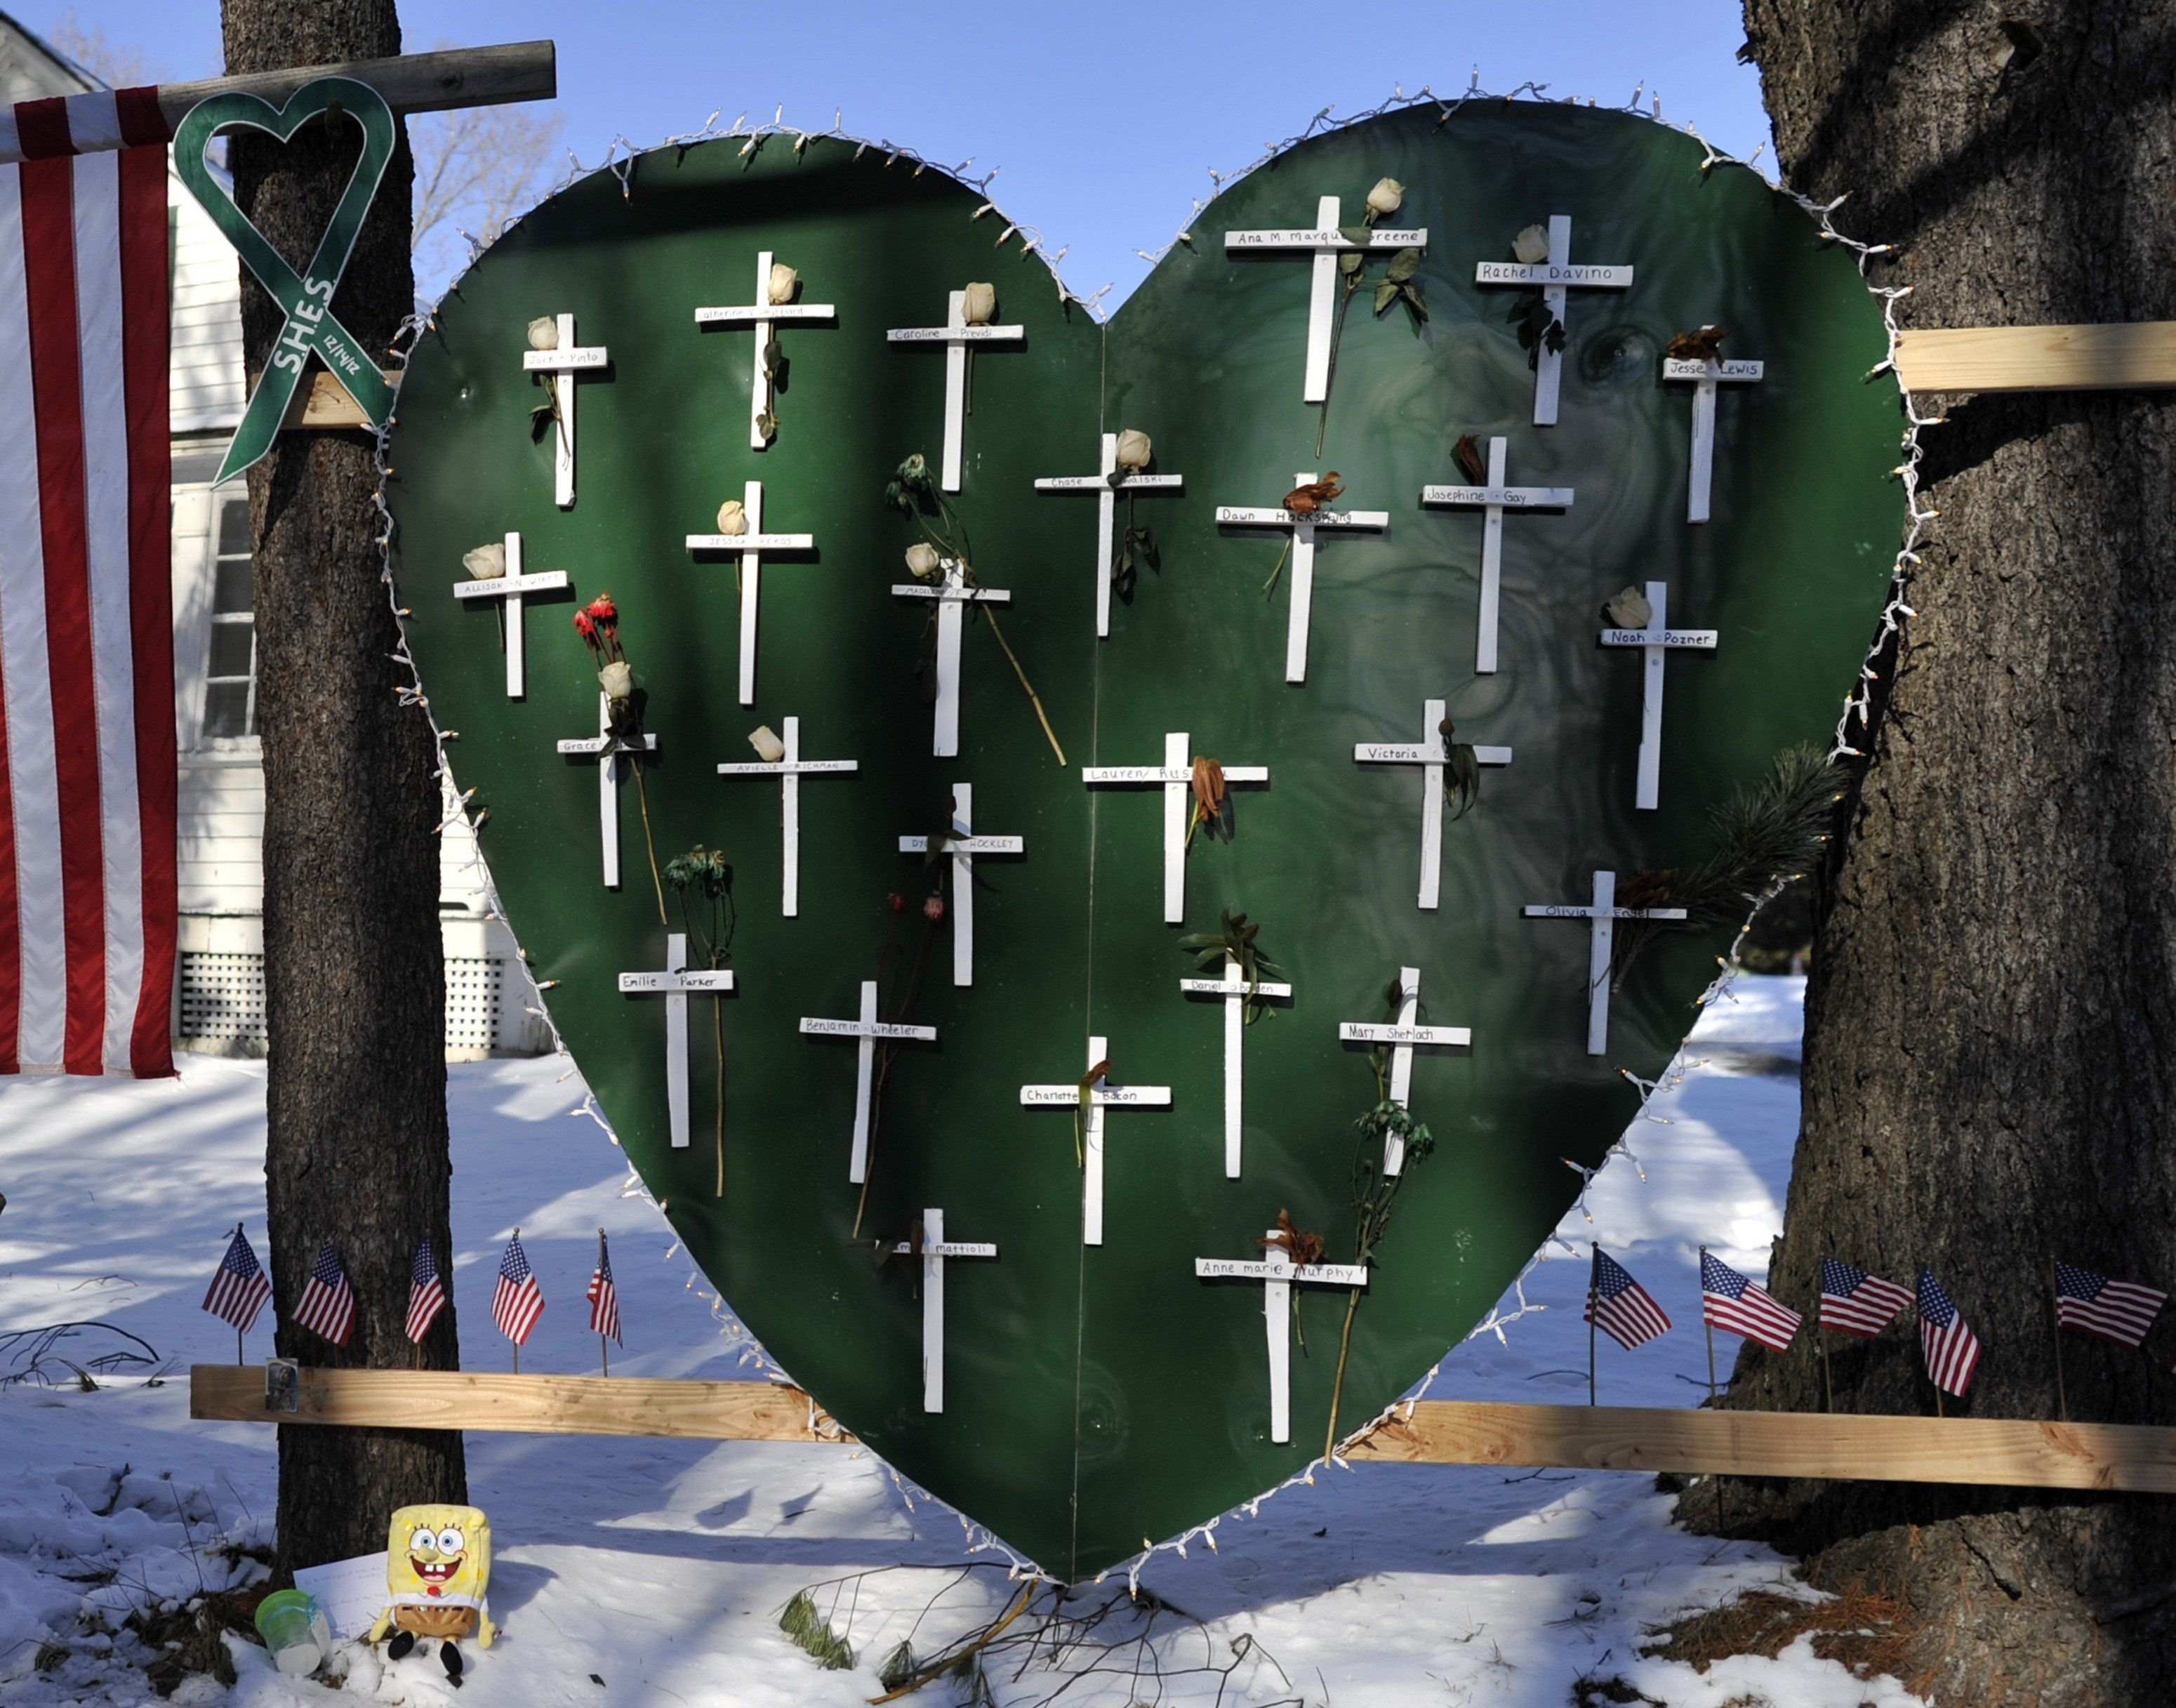 A memorial in Newtown, Connecticut, for Sandy Hook Elementary students and staff who died in the shooting.